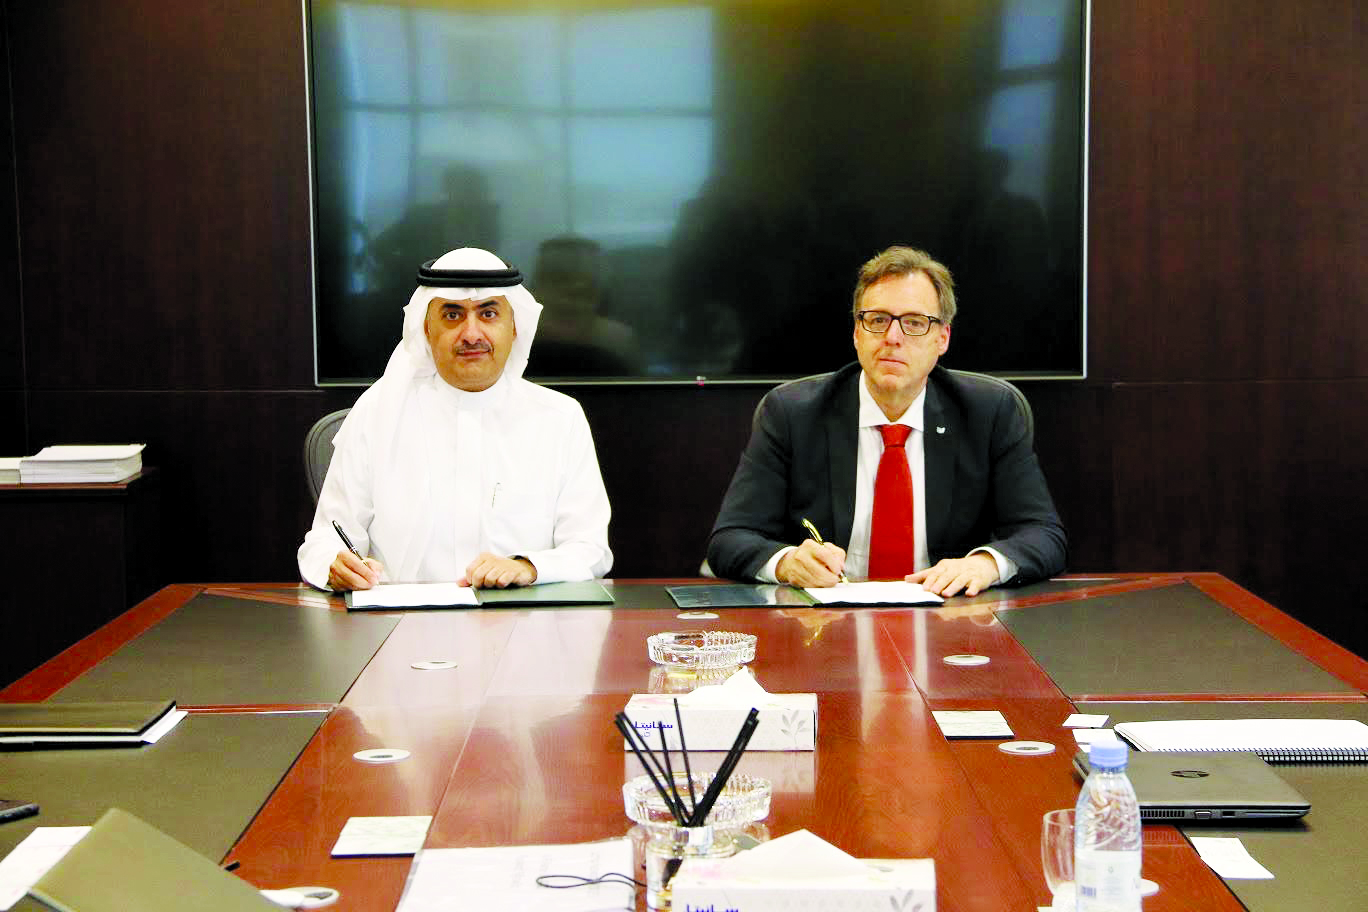 Faisal Al Quraishi, chairman, Ali Zaid Al Quraishi & Brother Co (left), and Stefano Zenti, executive